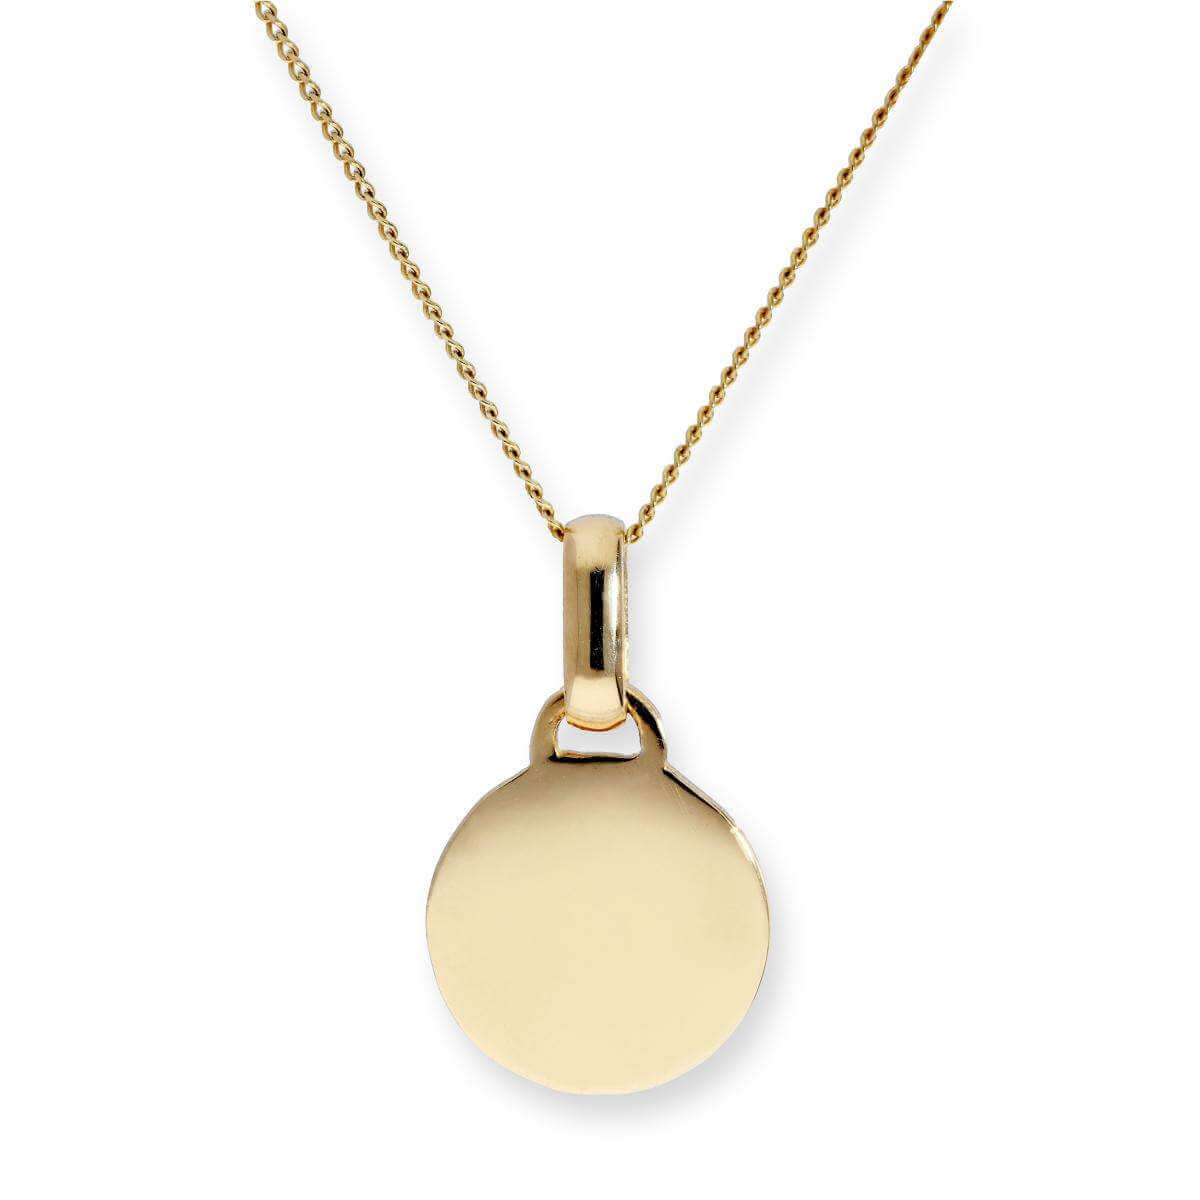 9ct Gold Engravable Round Pendant Necklace 16 - 20 Inches